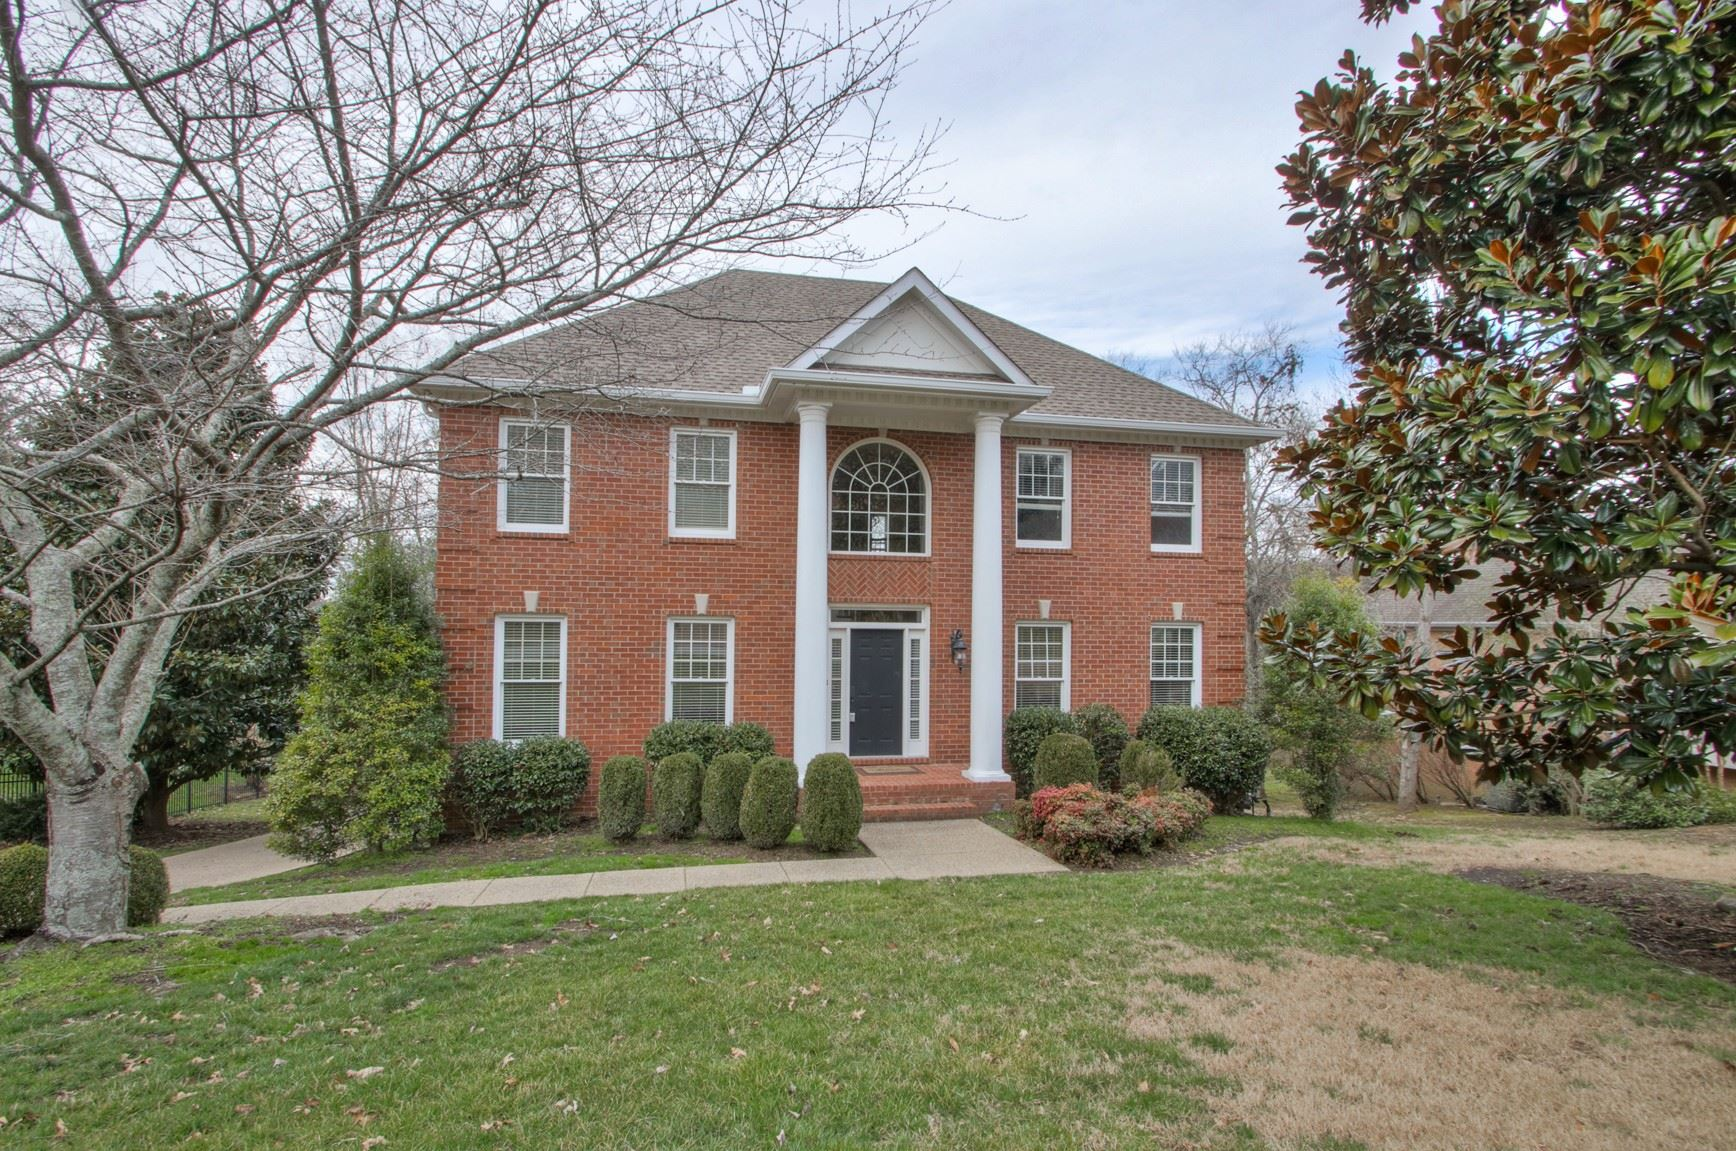 Photo of 9497 Waterfall Rd, Brentwood, TN 37027 (MLS # 2233177)